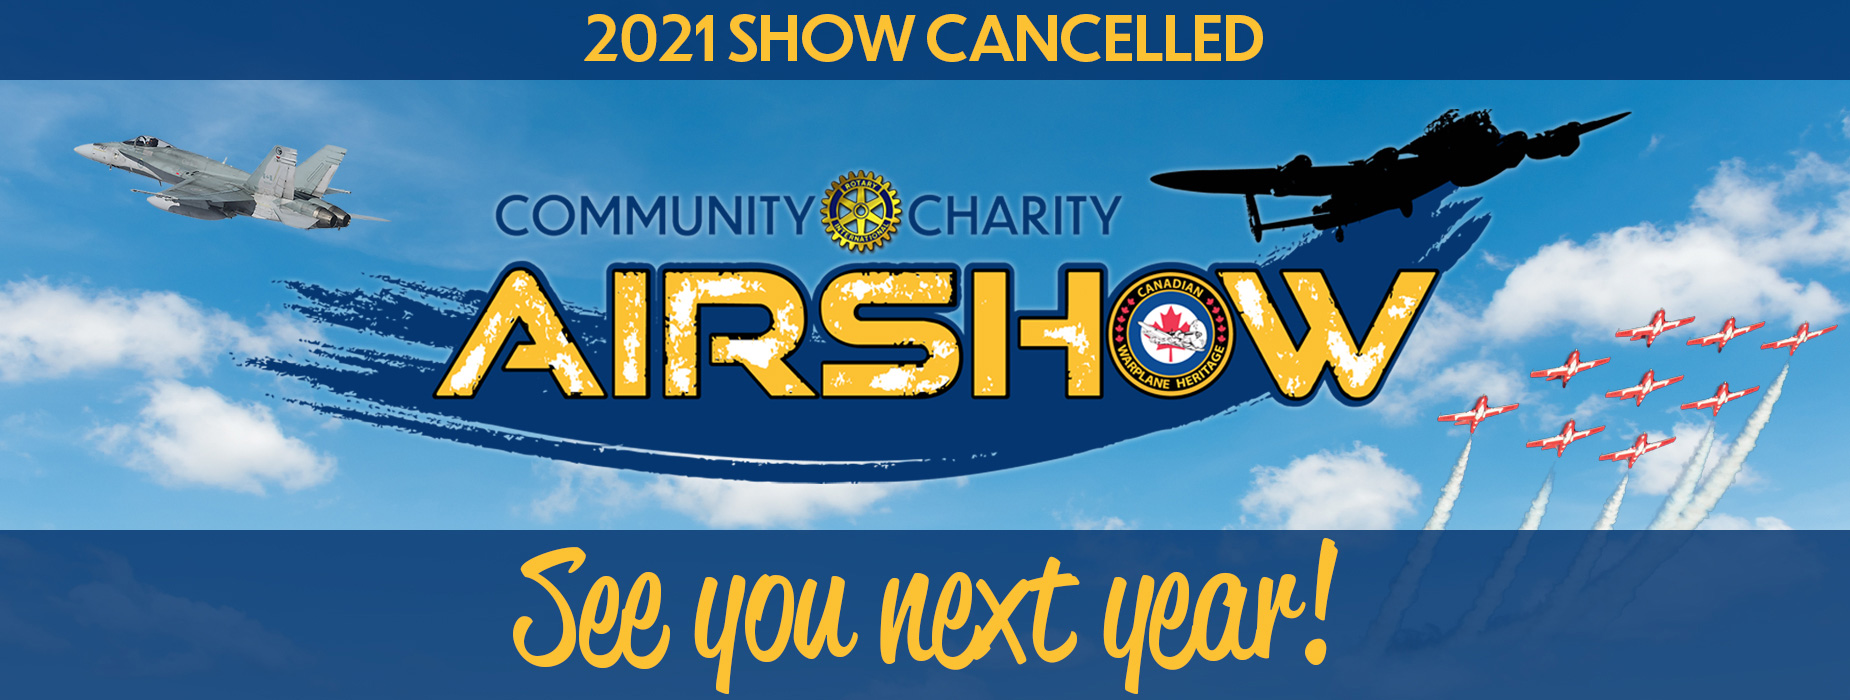 Poster for Community Charity Airshow